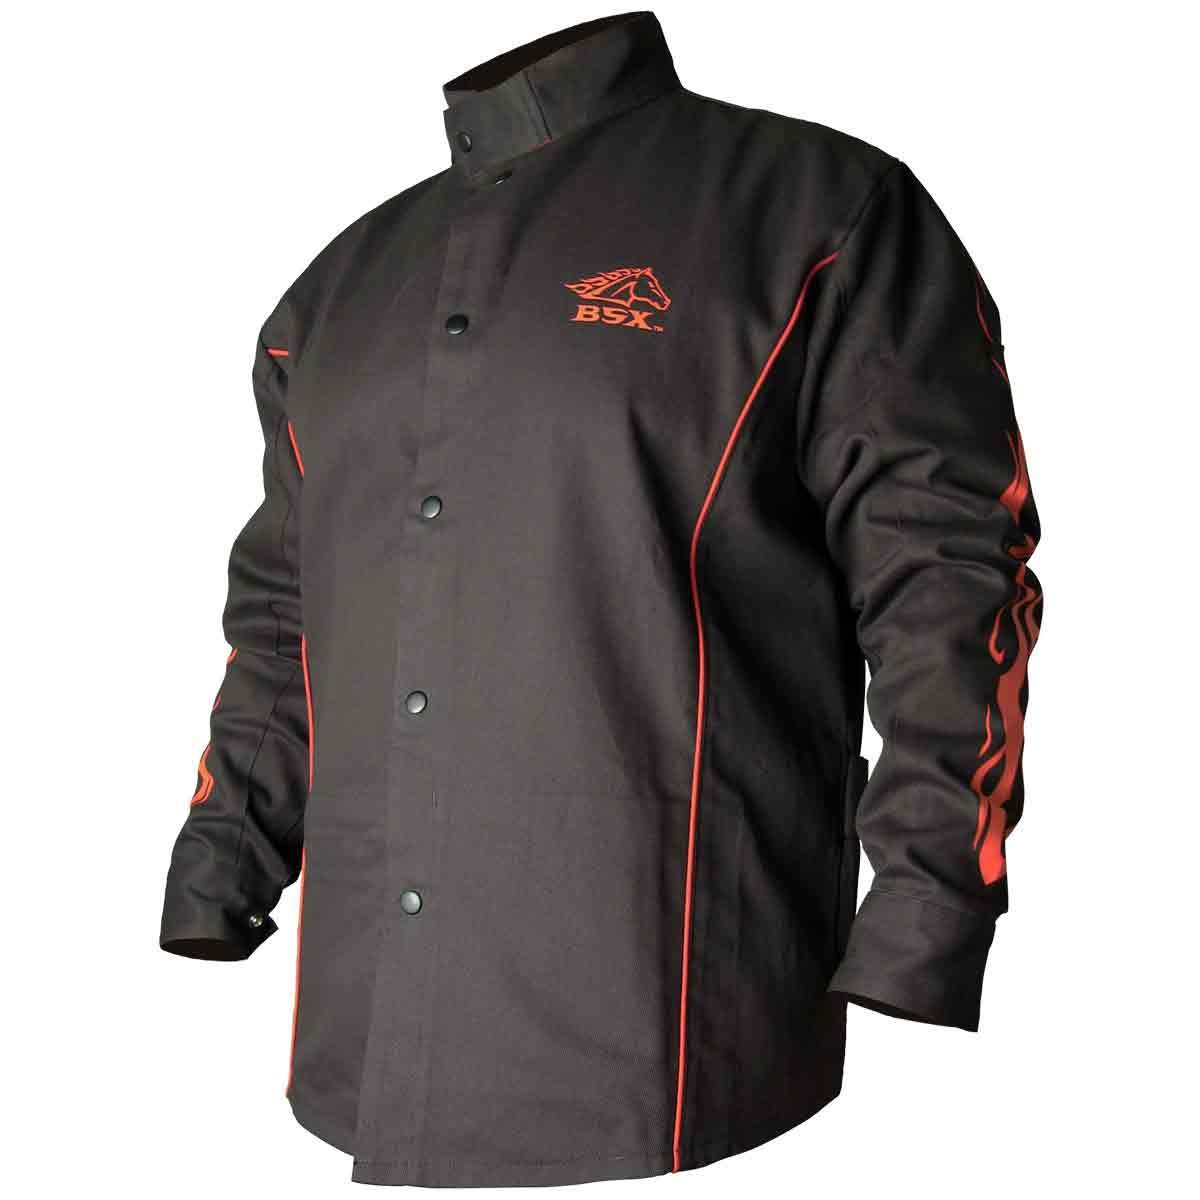 BSX Flame-Resistant Welding Jacket - Black with Red Flames, Size 3X-Large